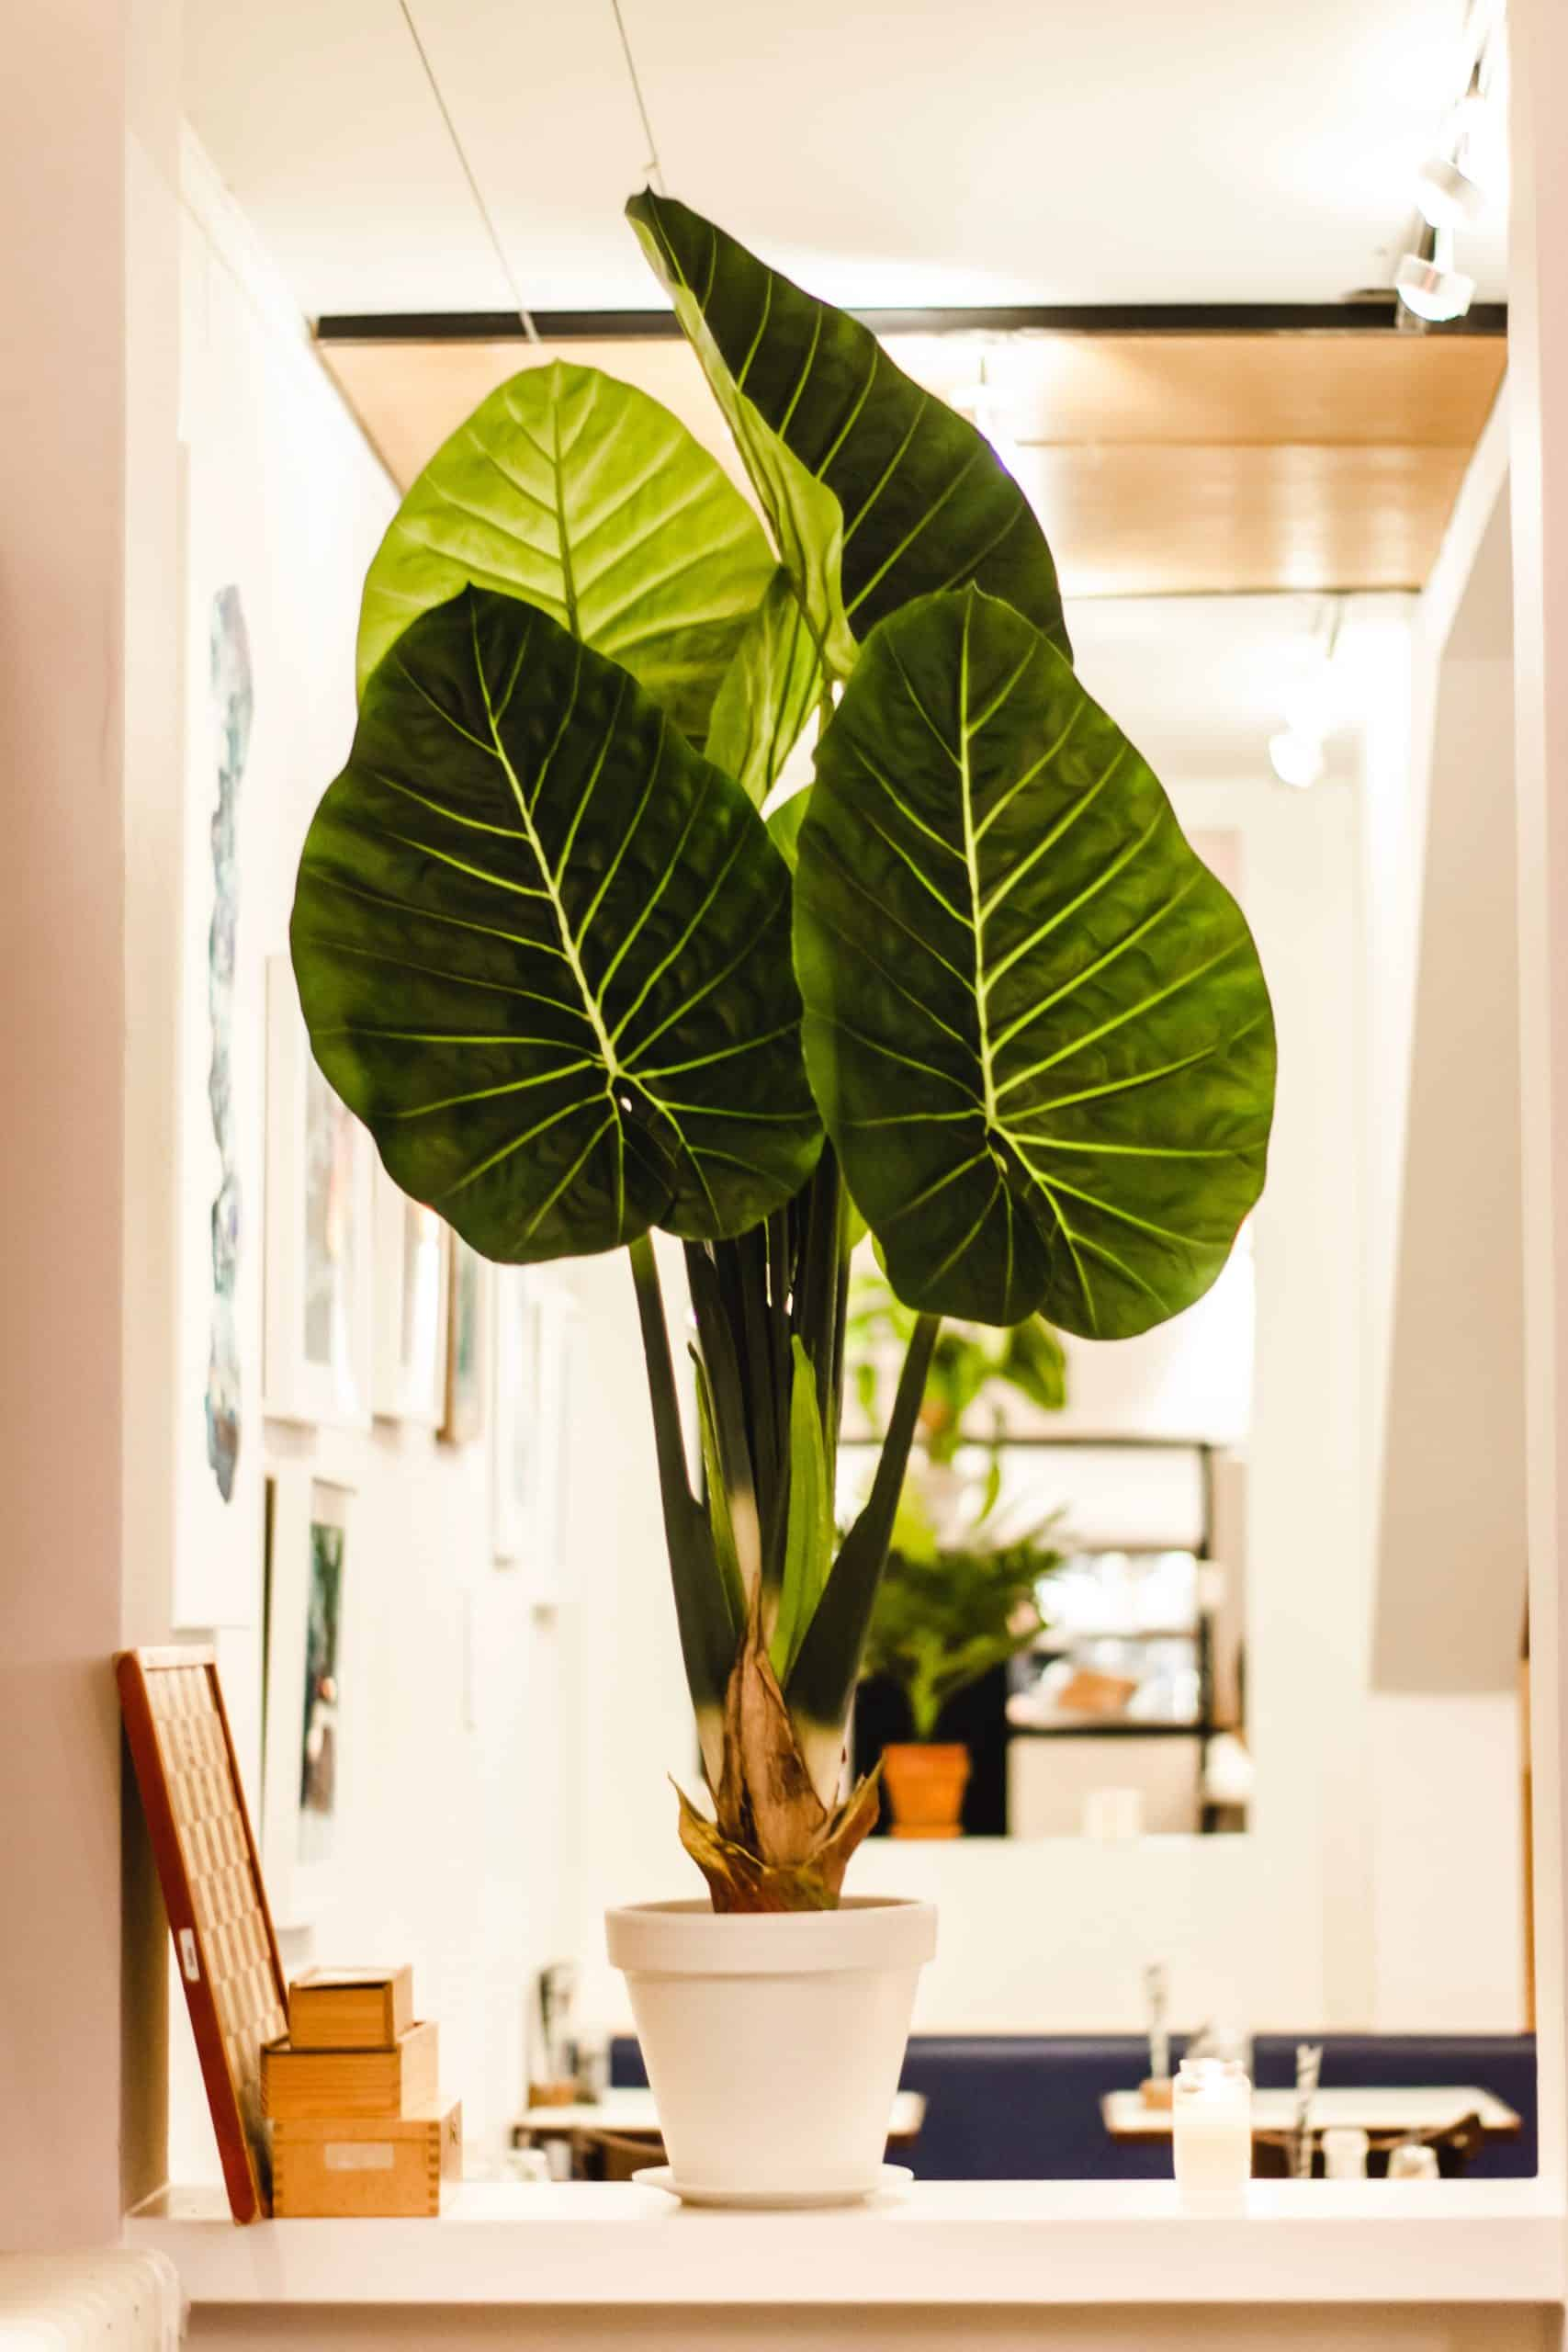 Use Some Indoor Plants To Decorate Your Office